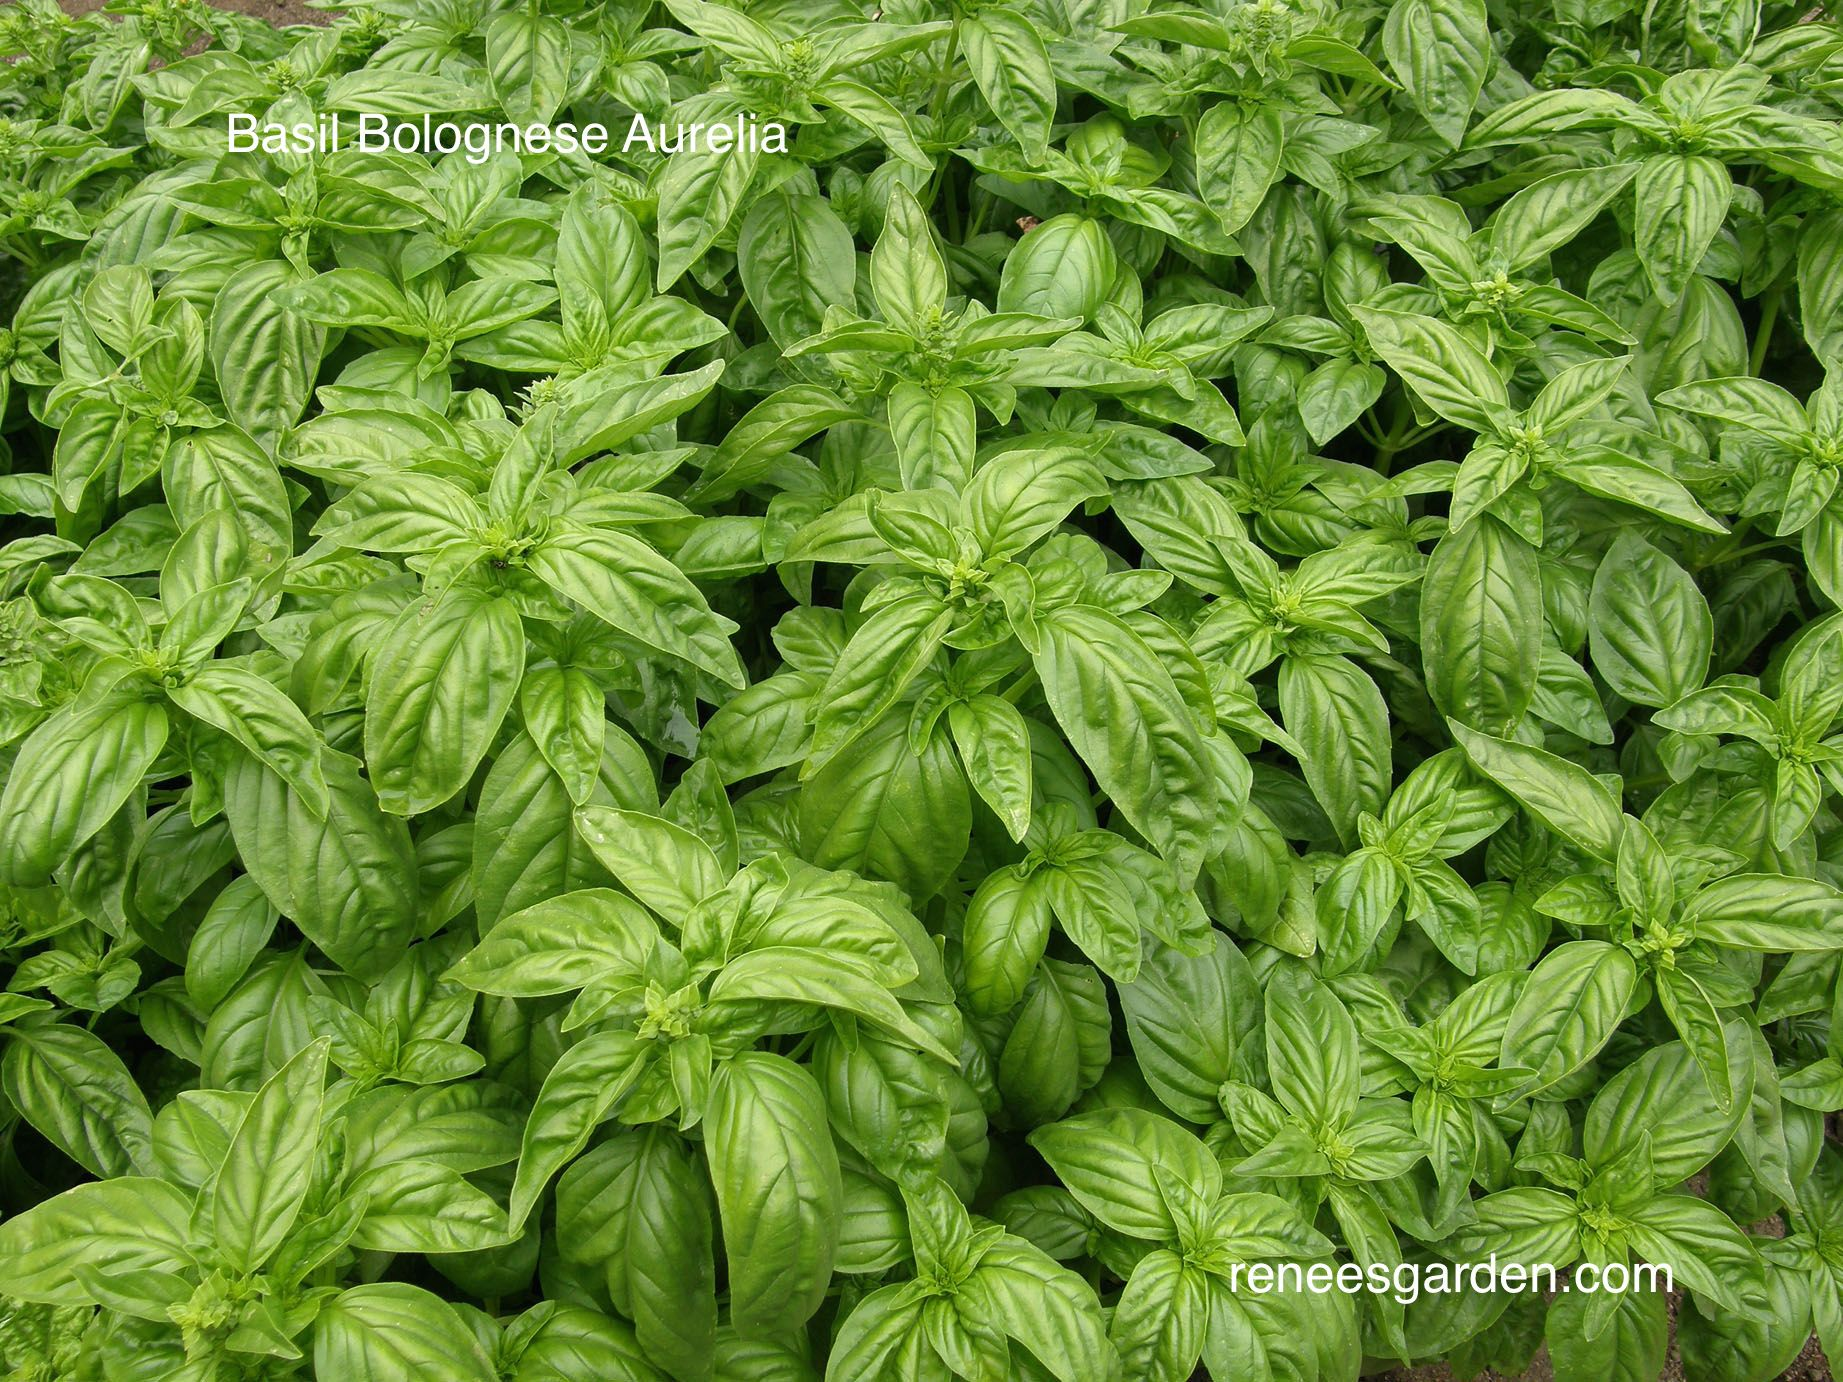 a renee s garden exclusive a specialty basil from the region